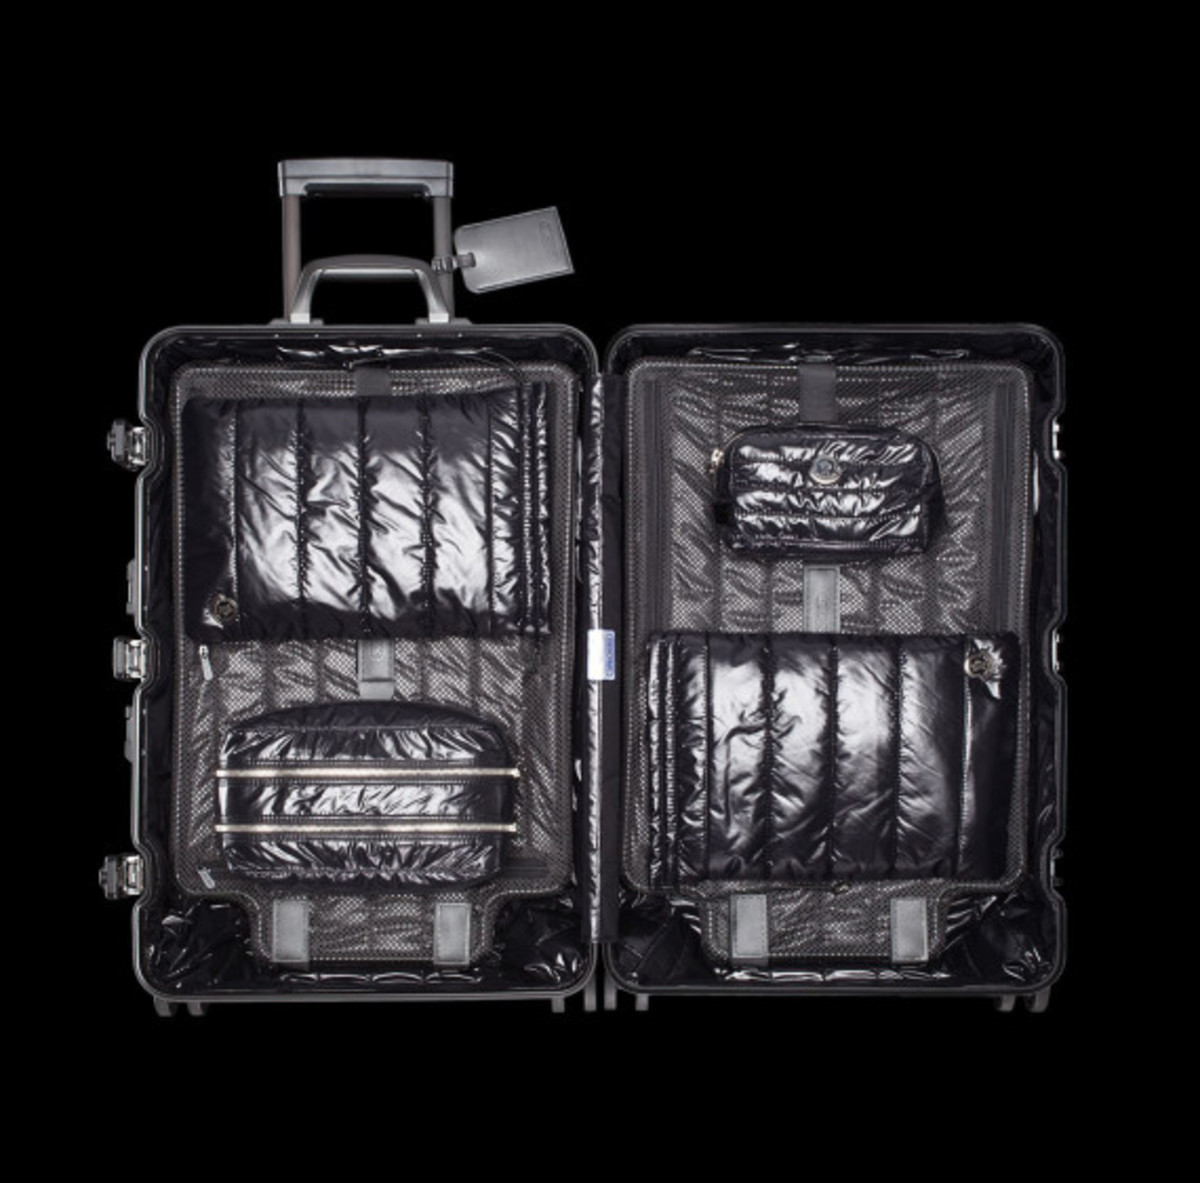 rimowa-and-moncler-luggage-collection-08